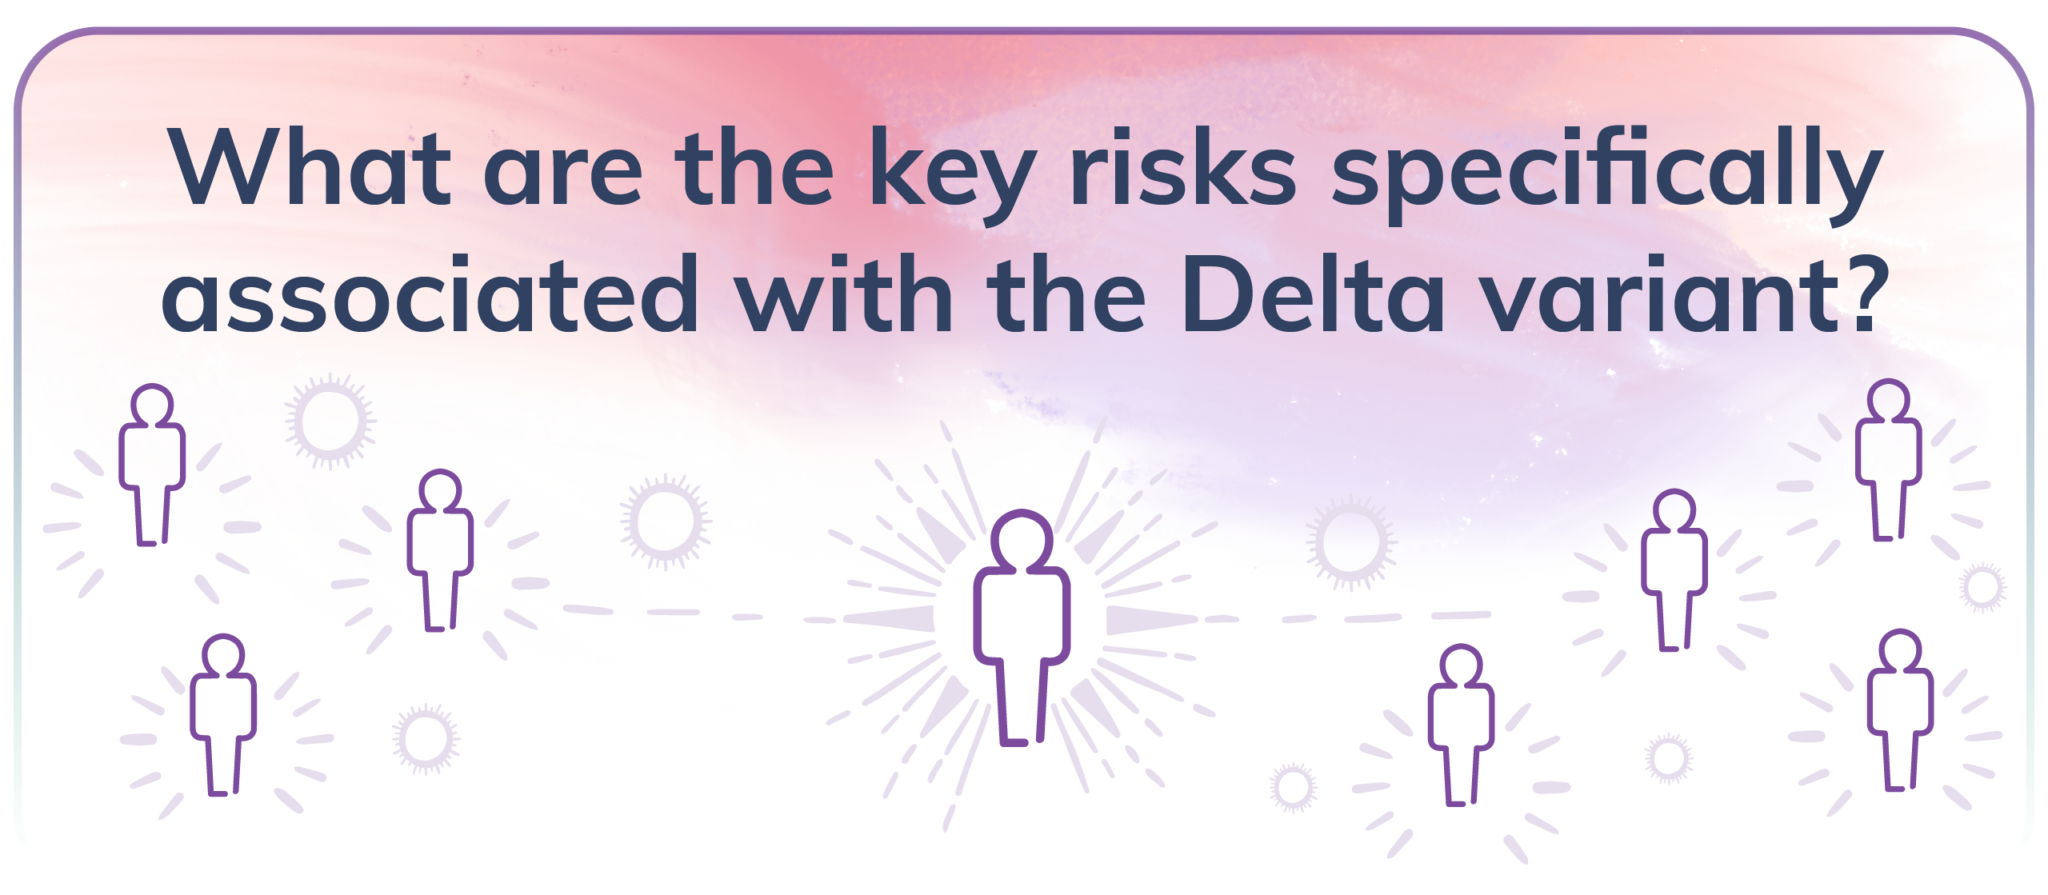 What are the key risks specifically associated with the Delta variant?